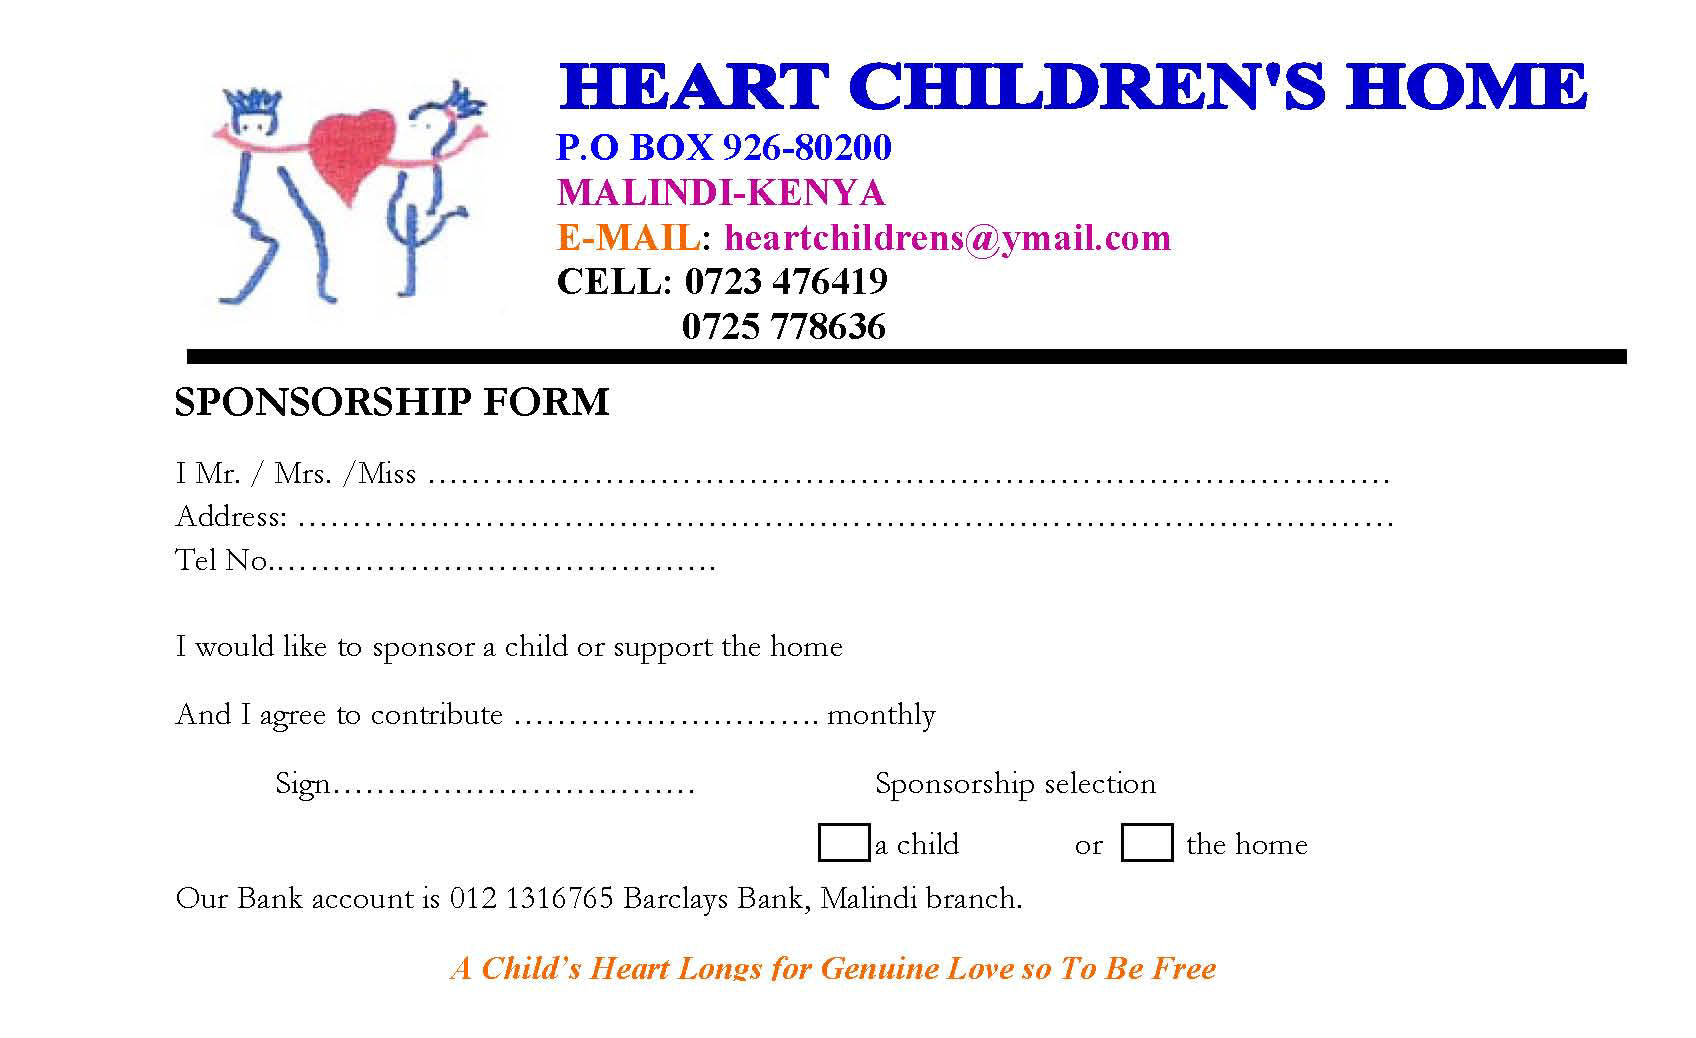 Heart Childrens home - Sponsorship form 1